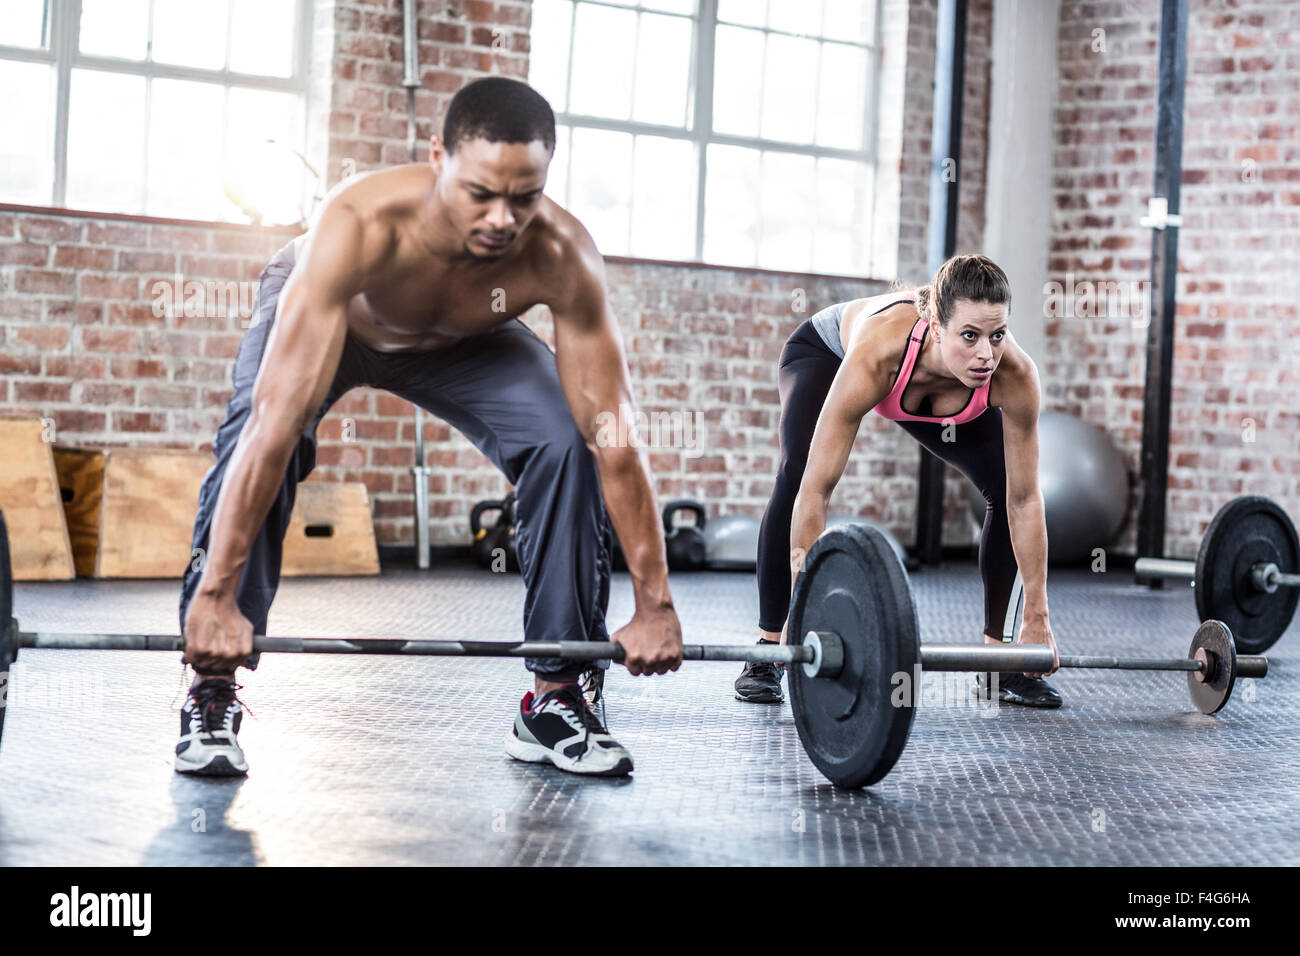 Fit couple lifting weight together - Stock Image